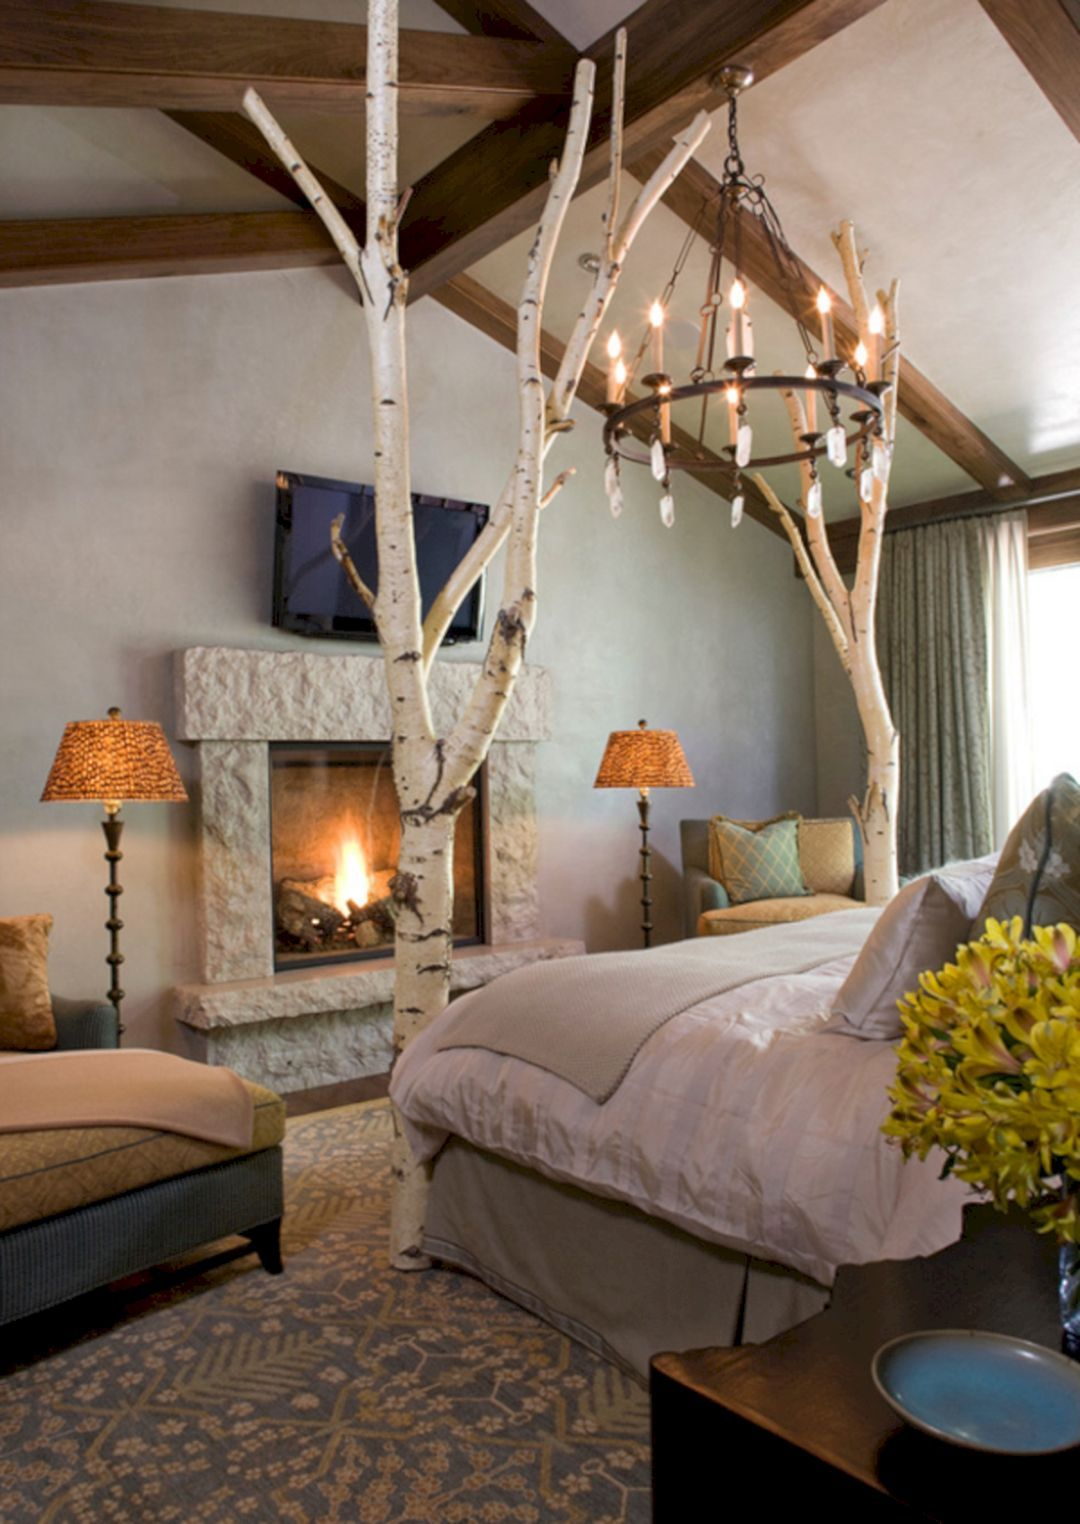 Cozy romantic bedroom - 50 Incredible Cozy And Romantic Bedroom Fireplaces For Your Home